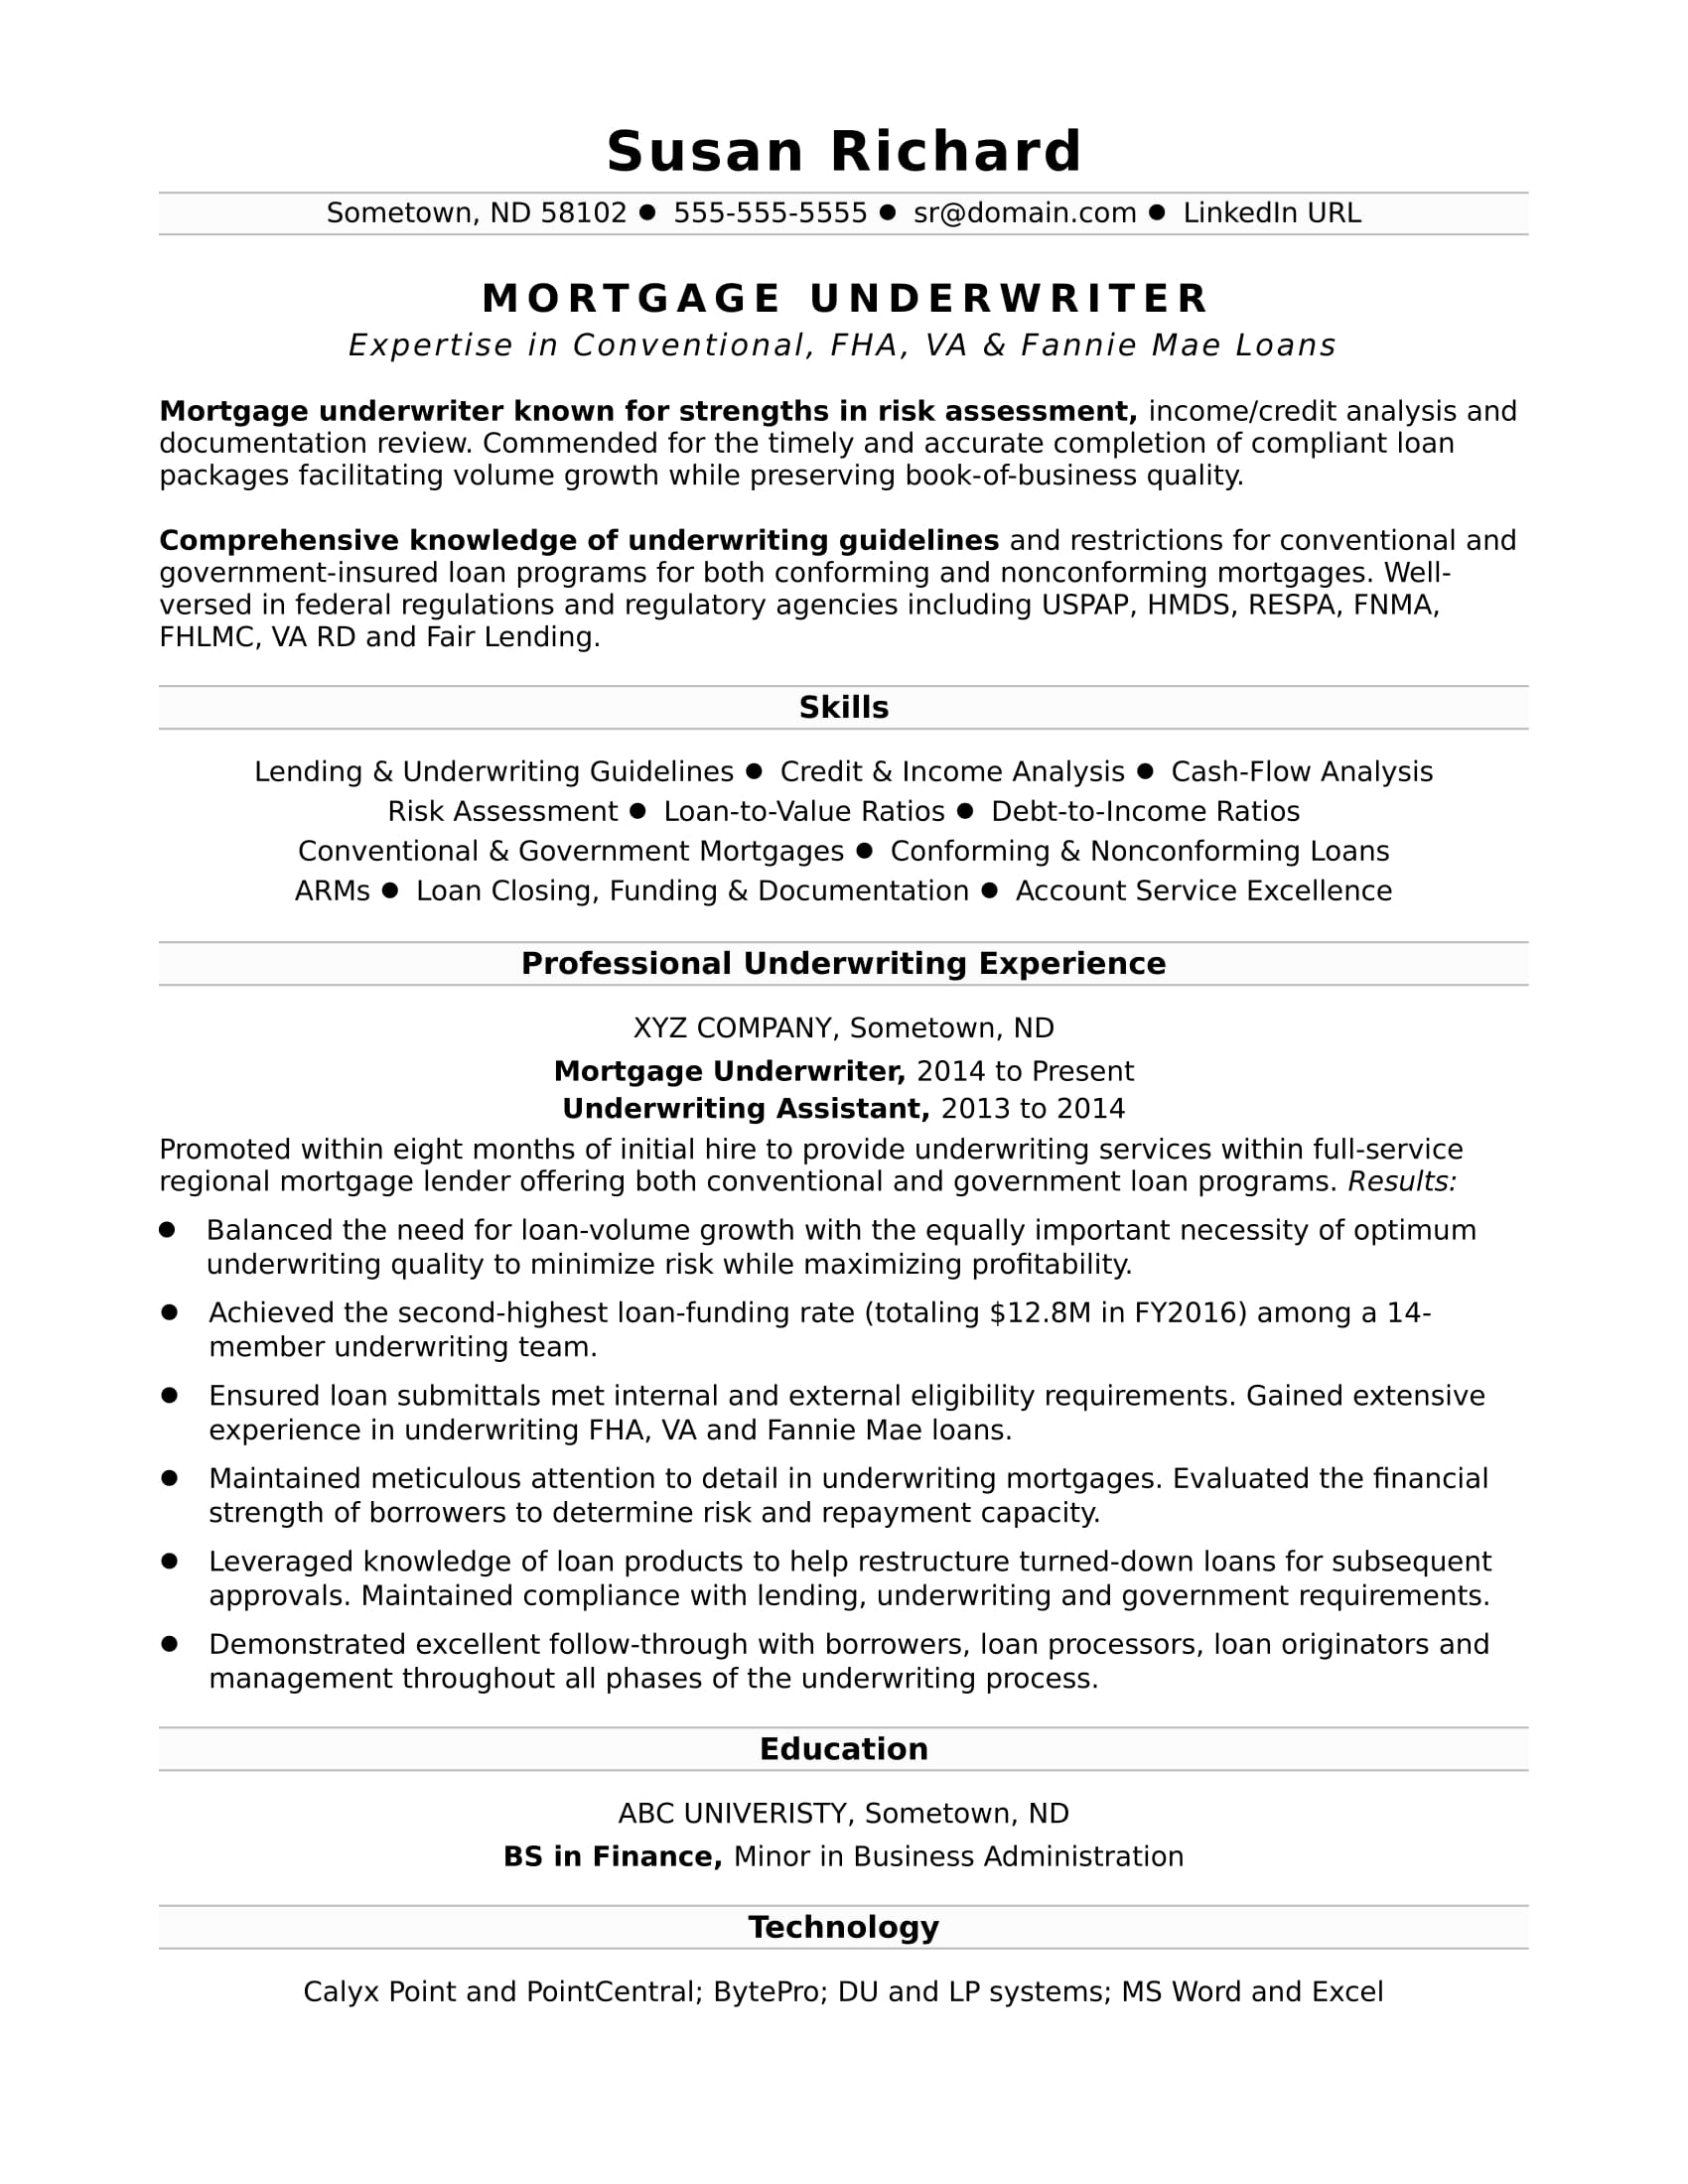 Posting Resume On Monster Mortgage Underwriter Resume Sample Monster